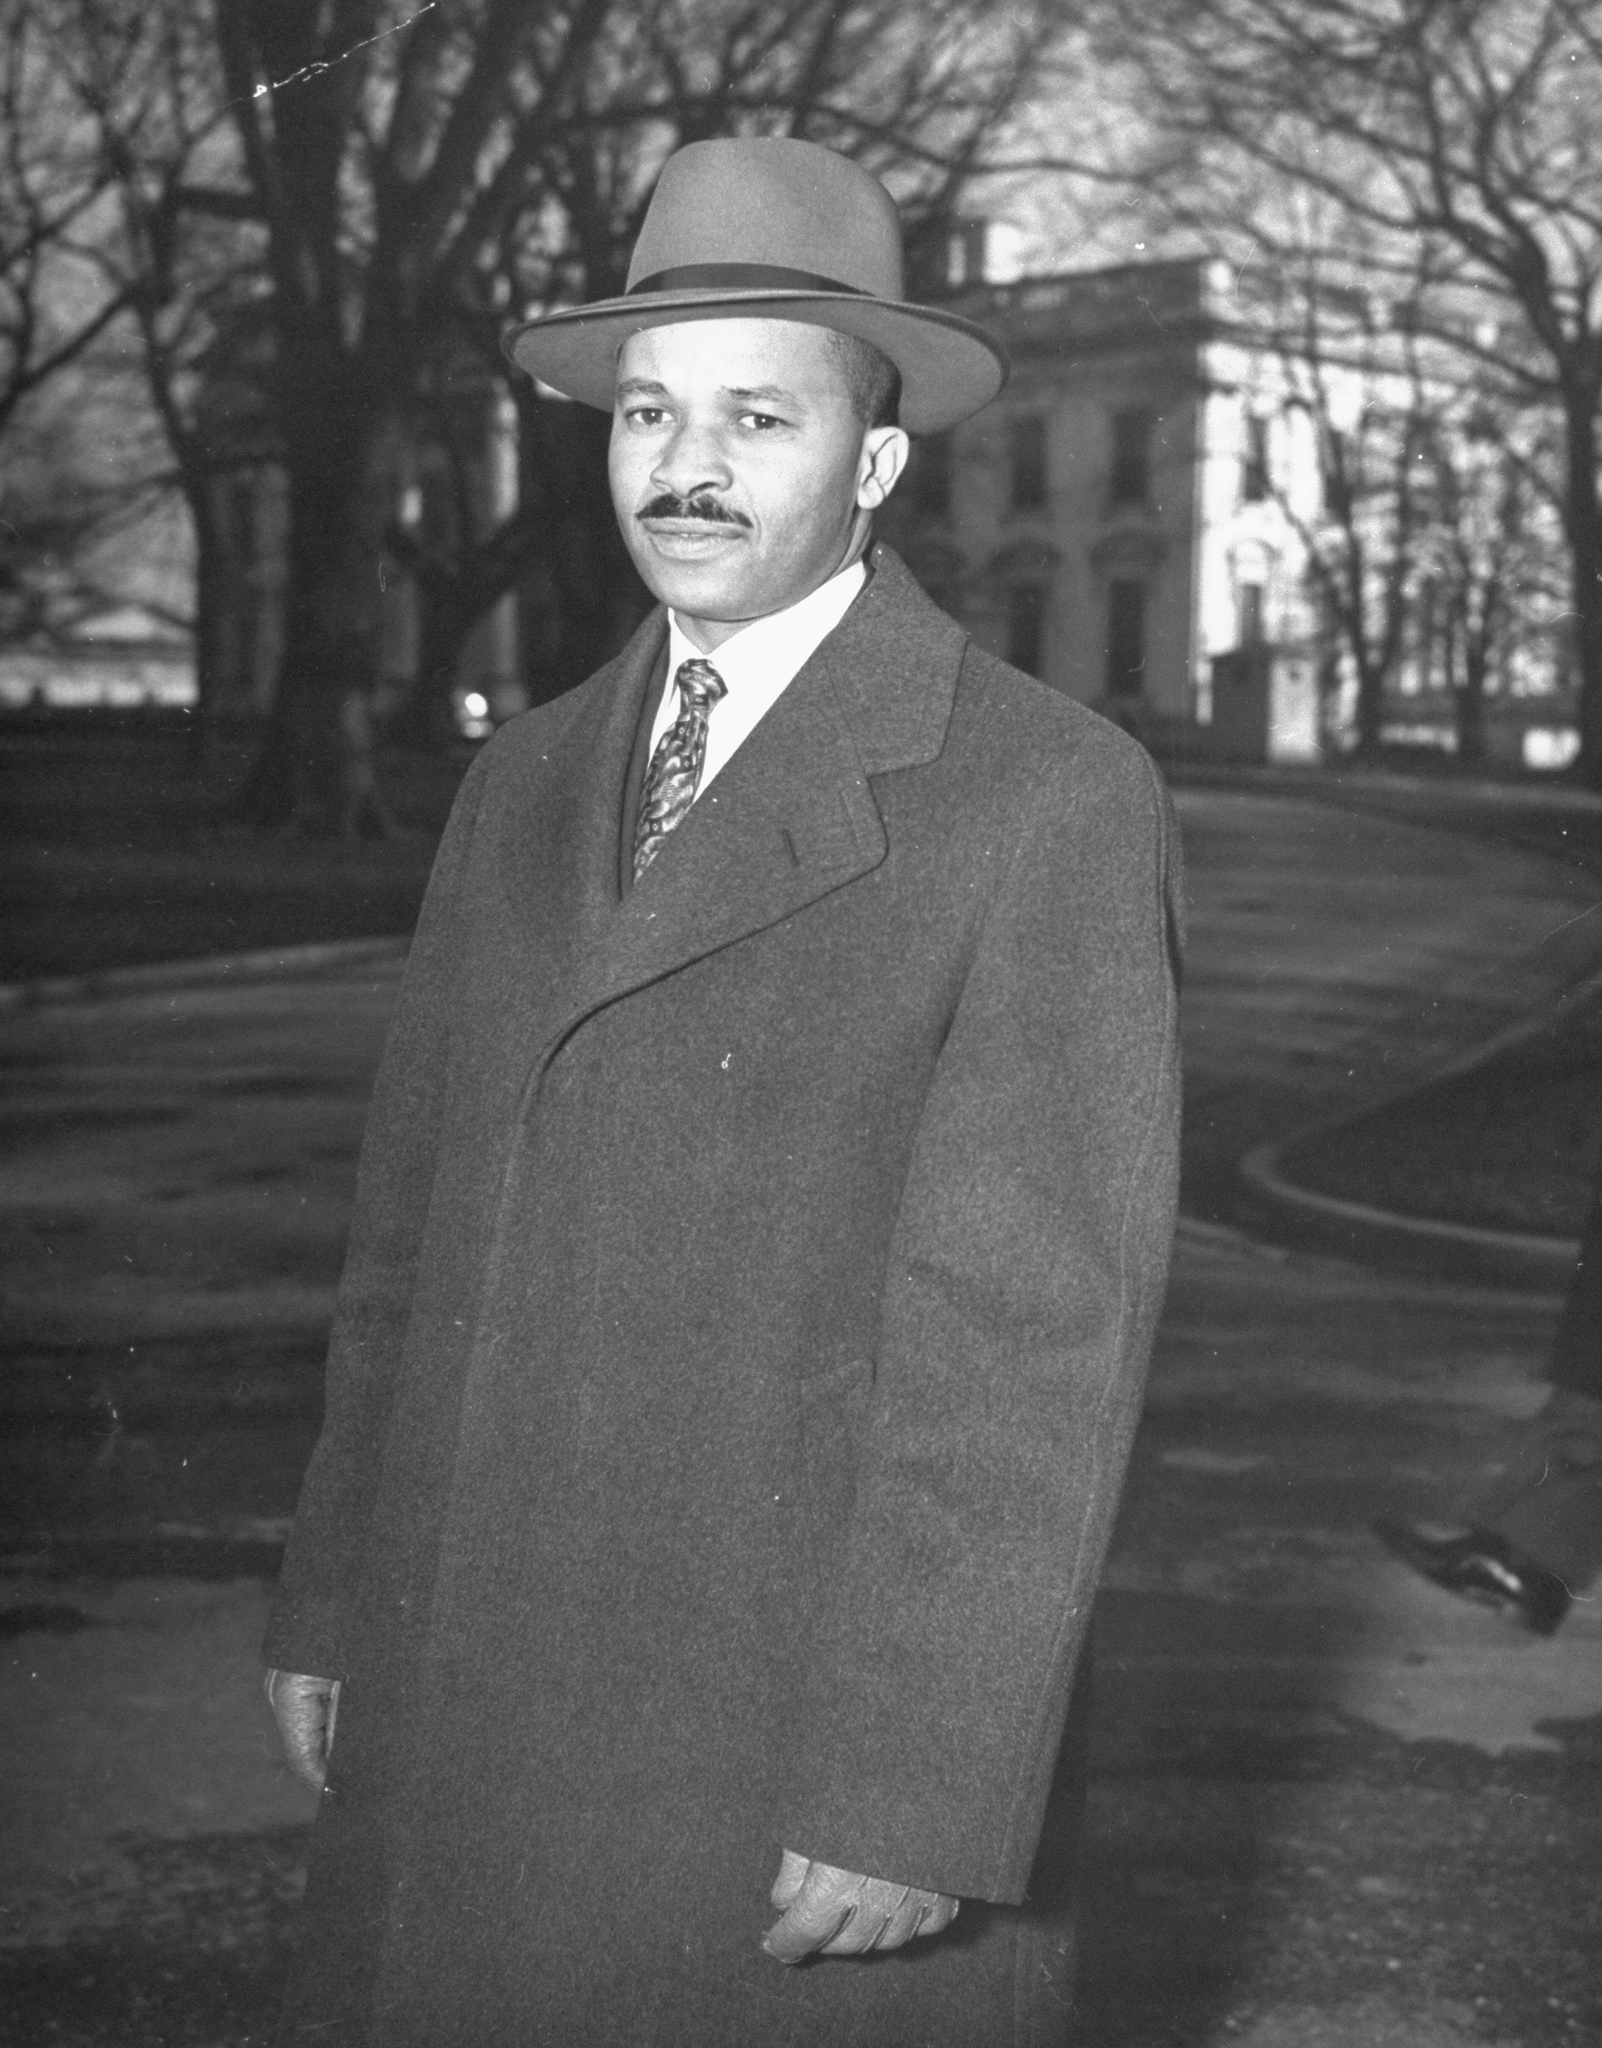 Reporter Harry McAlpin leaving the White House after a press conference in 1944.